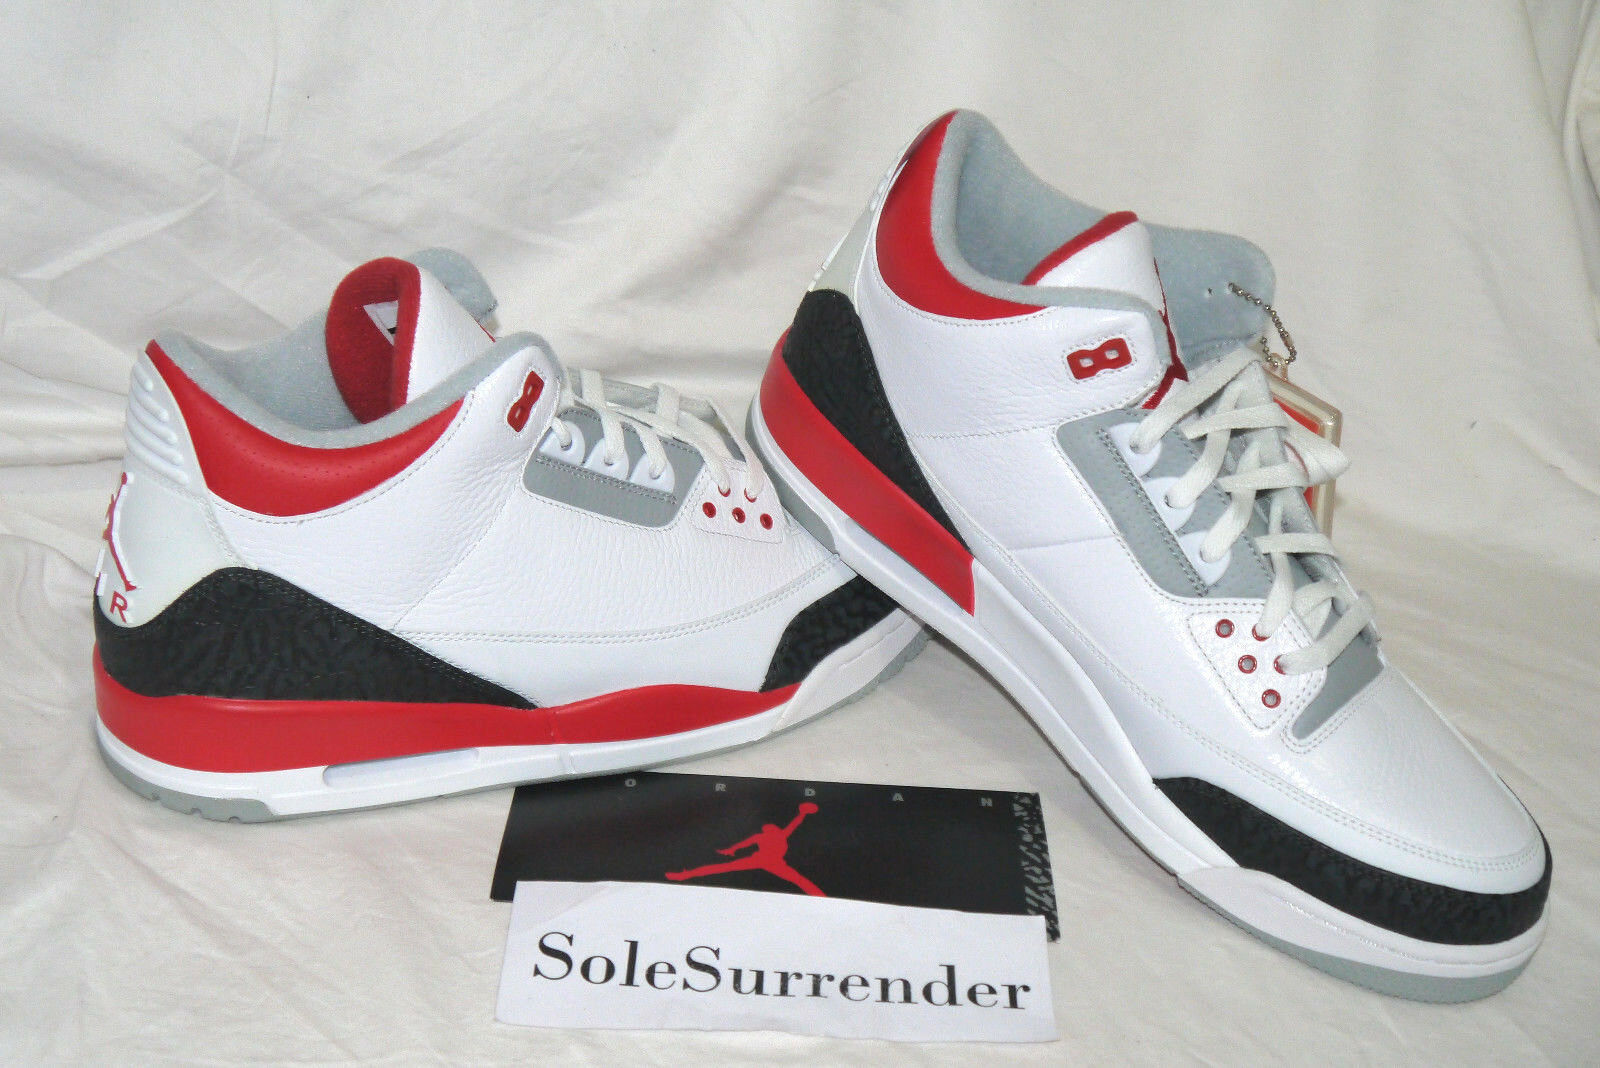 Air Jordan 3 Retro - SIZE 13.5 - NEW - 136064-120 Fire Red III White Black Bred Great discount